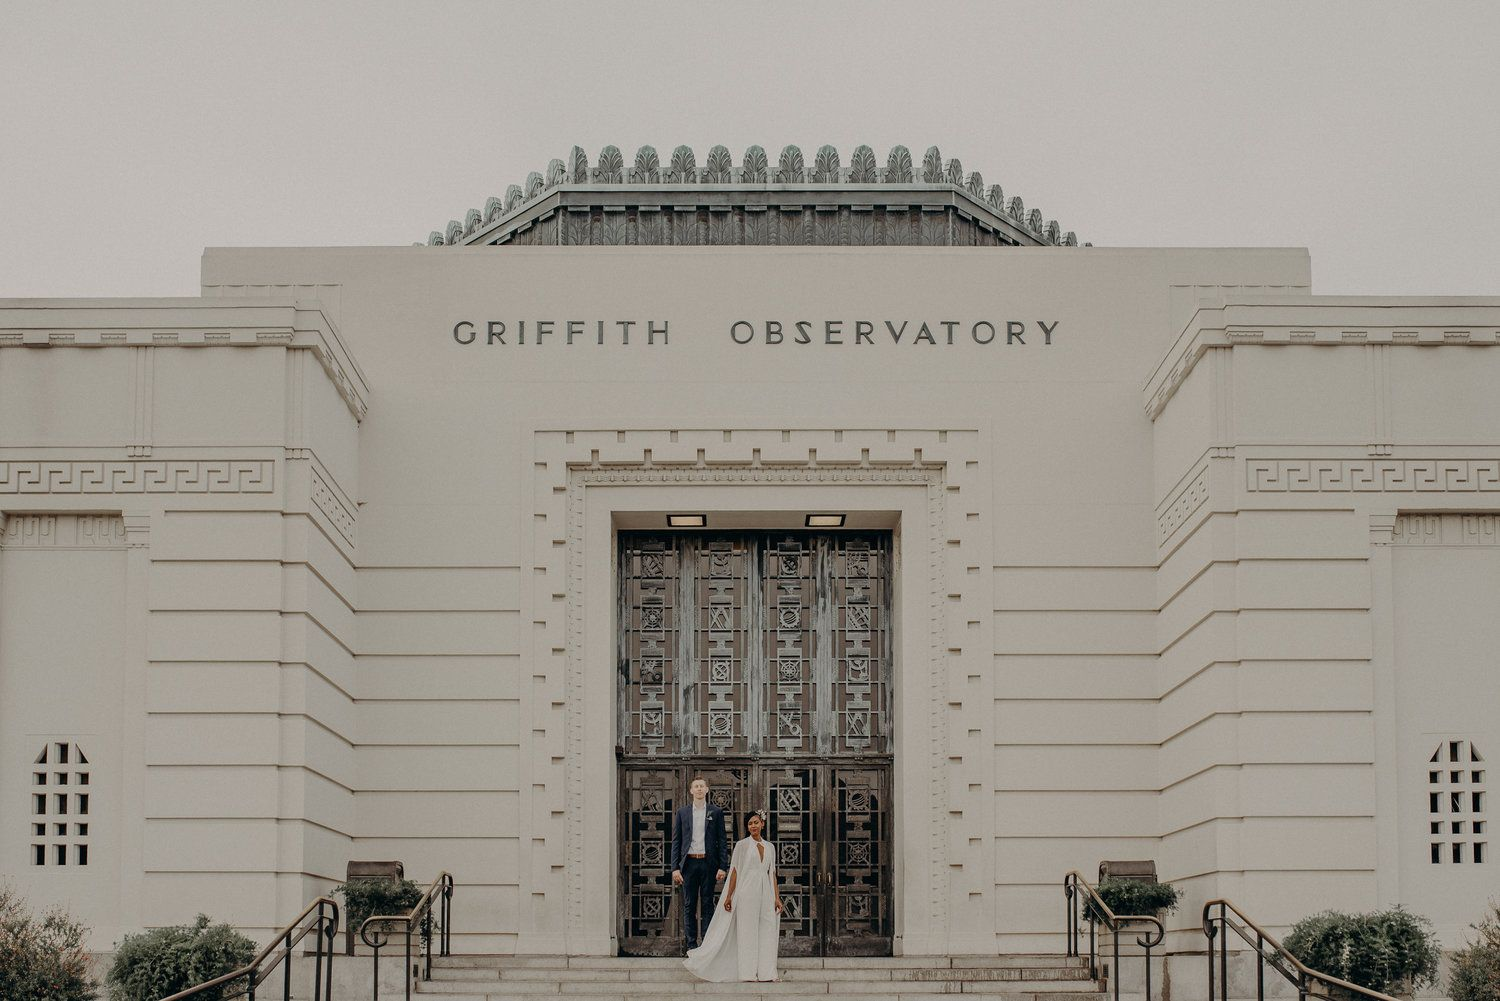 Isaiah Taylor Photography Griffith Observatory Elopement Wedding Photographer In Los Angeles Griffith Observatory Wedding Photography Los Angeles Los Angeles Wedding Photographer